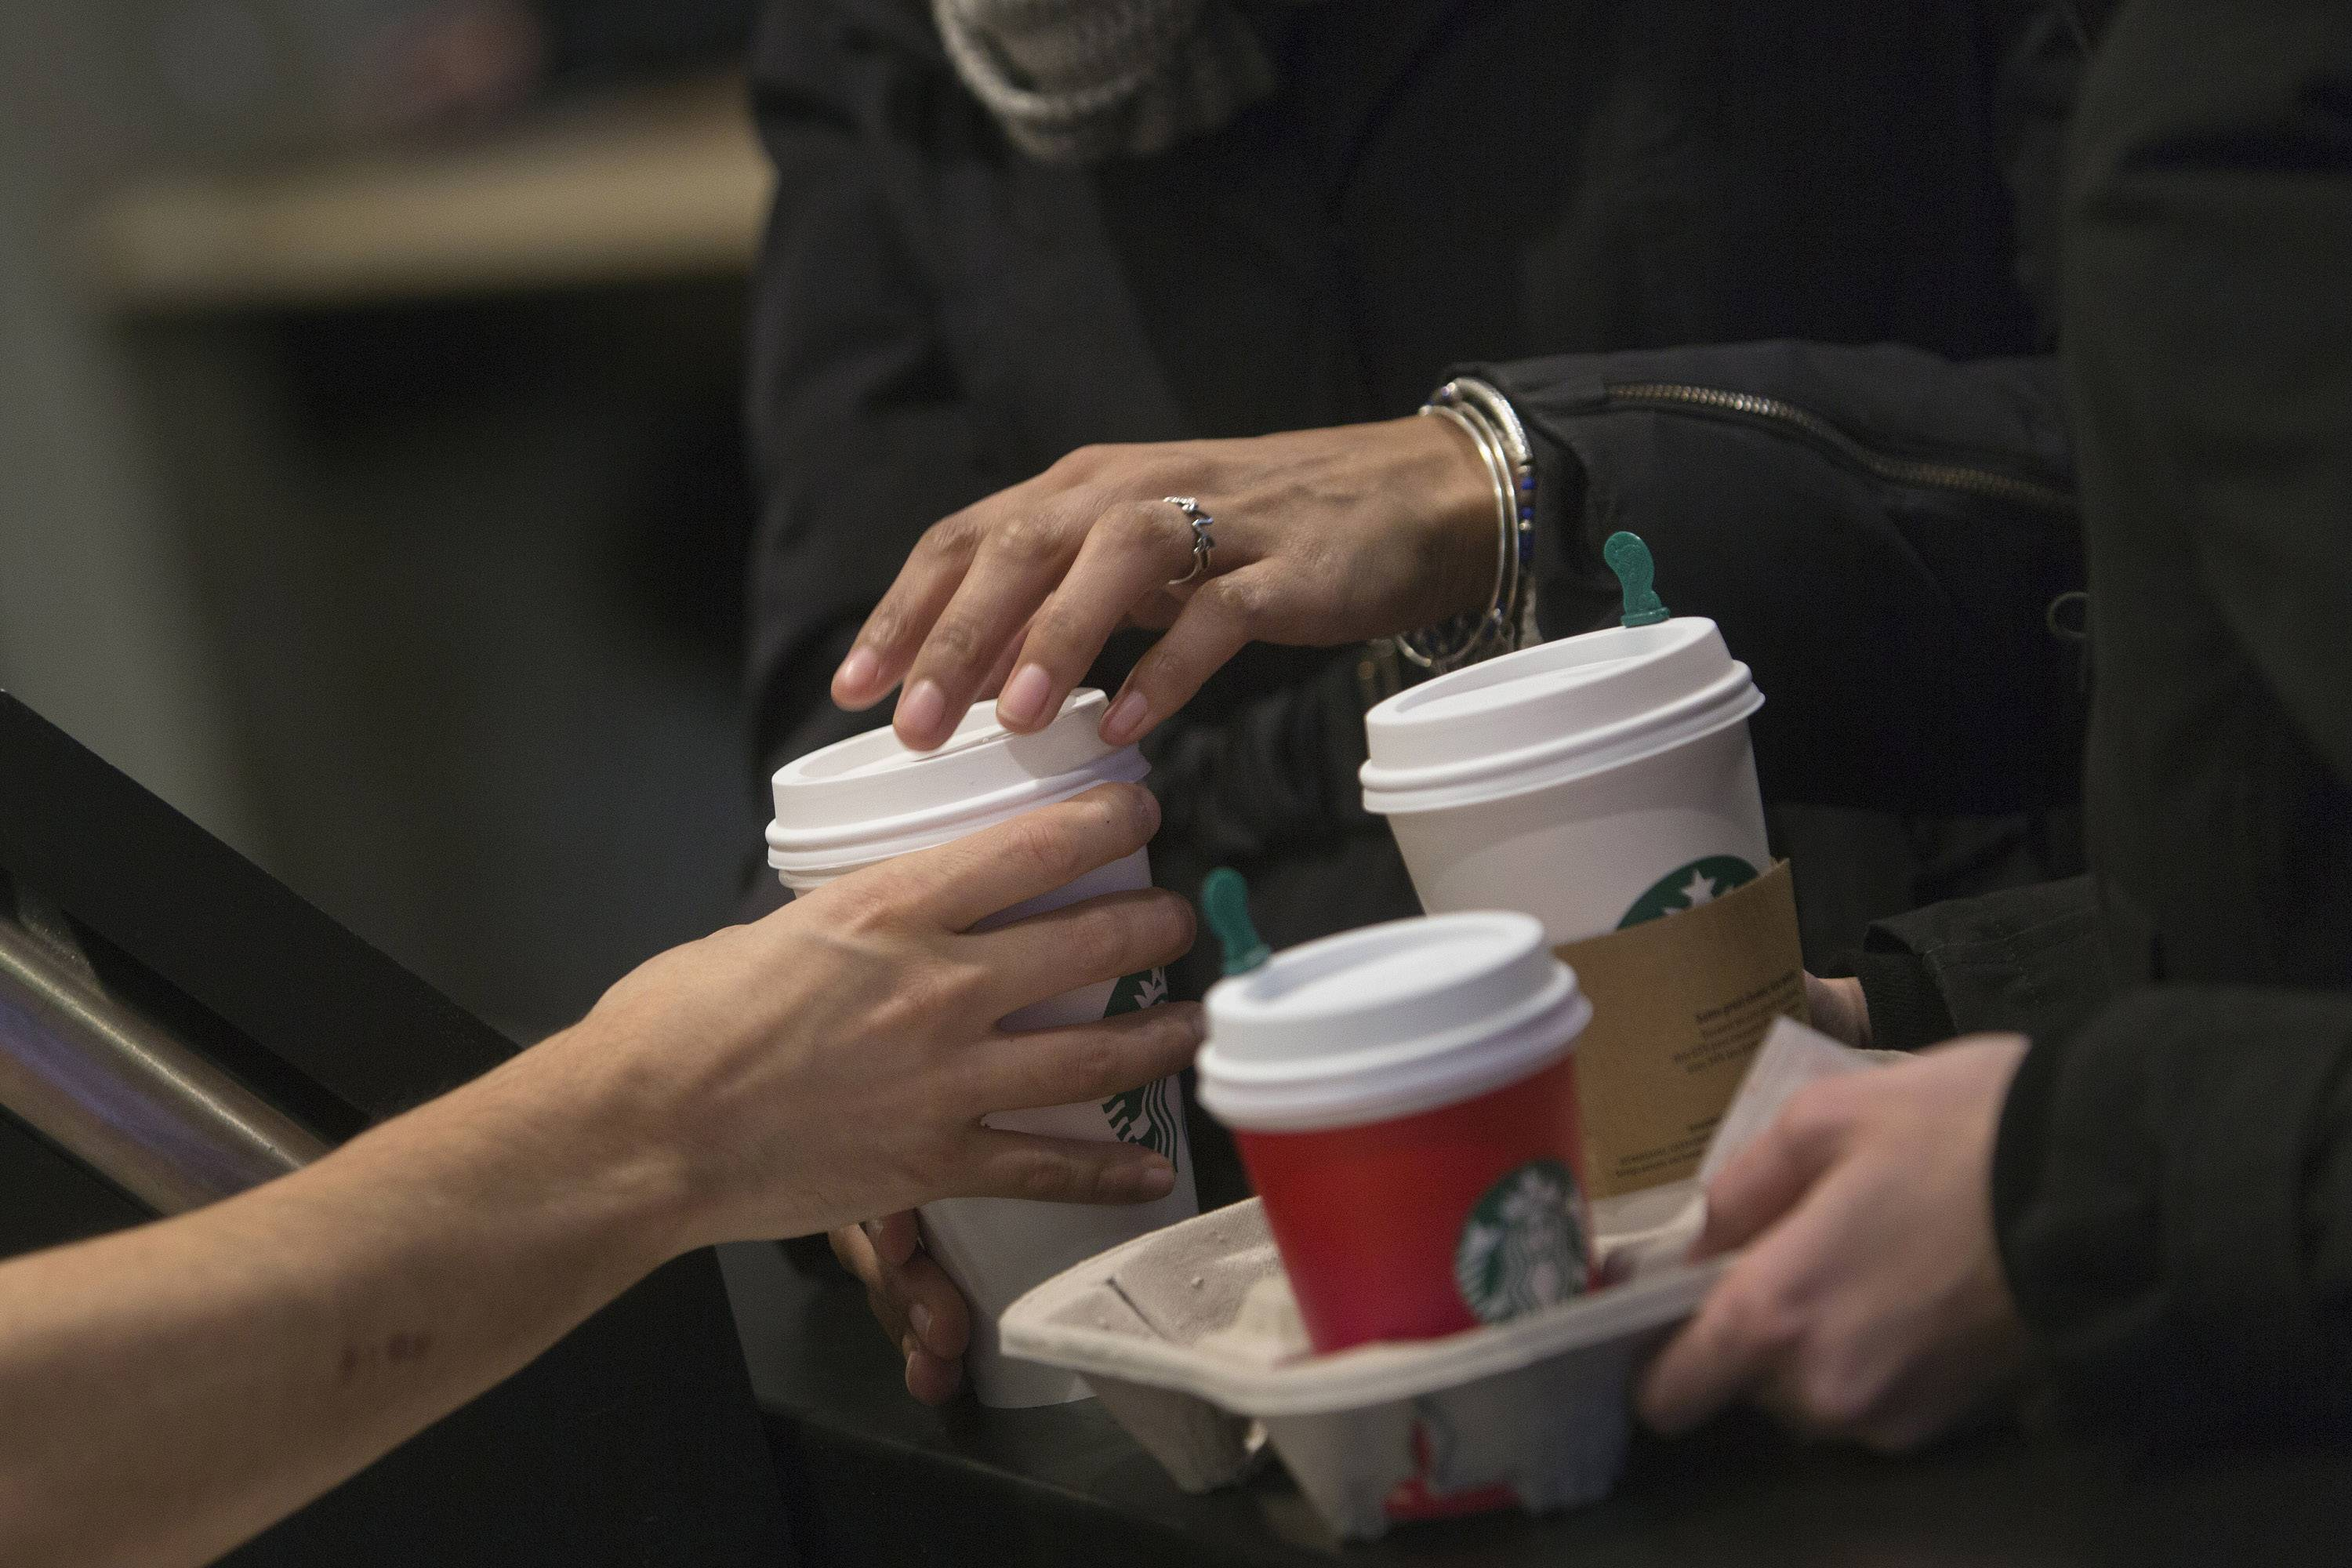 Downside to Starbucks mobile orders? Congestion at pickup counter